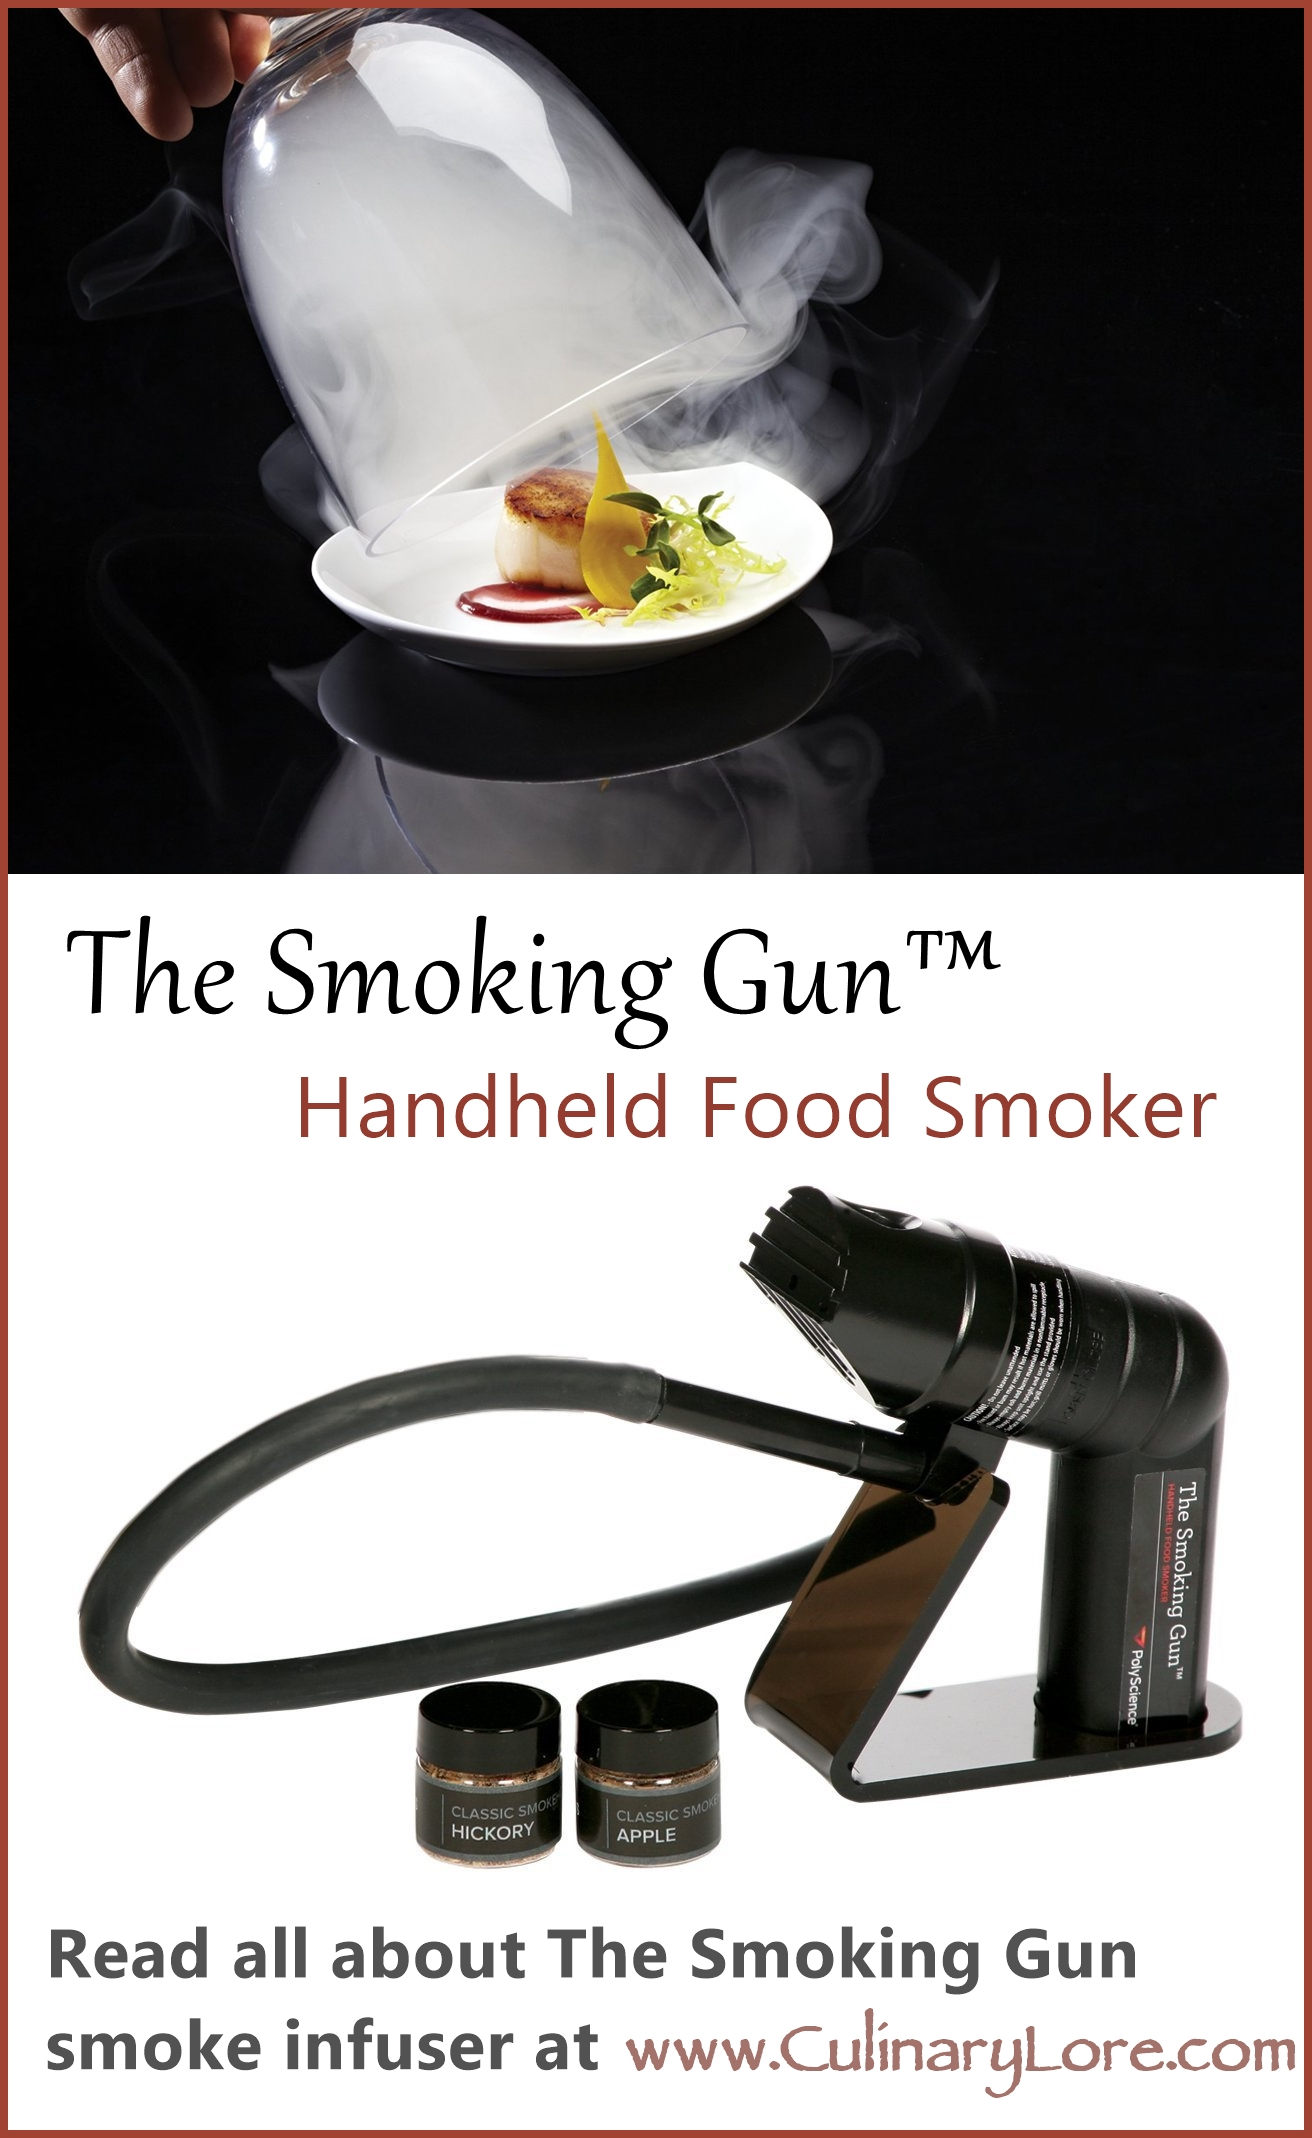 The Smoking Gun Handheld Food Smoker infuser